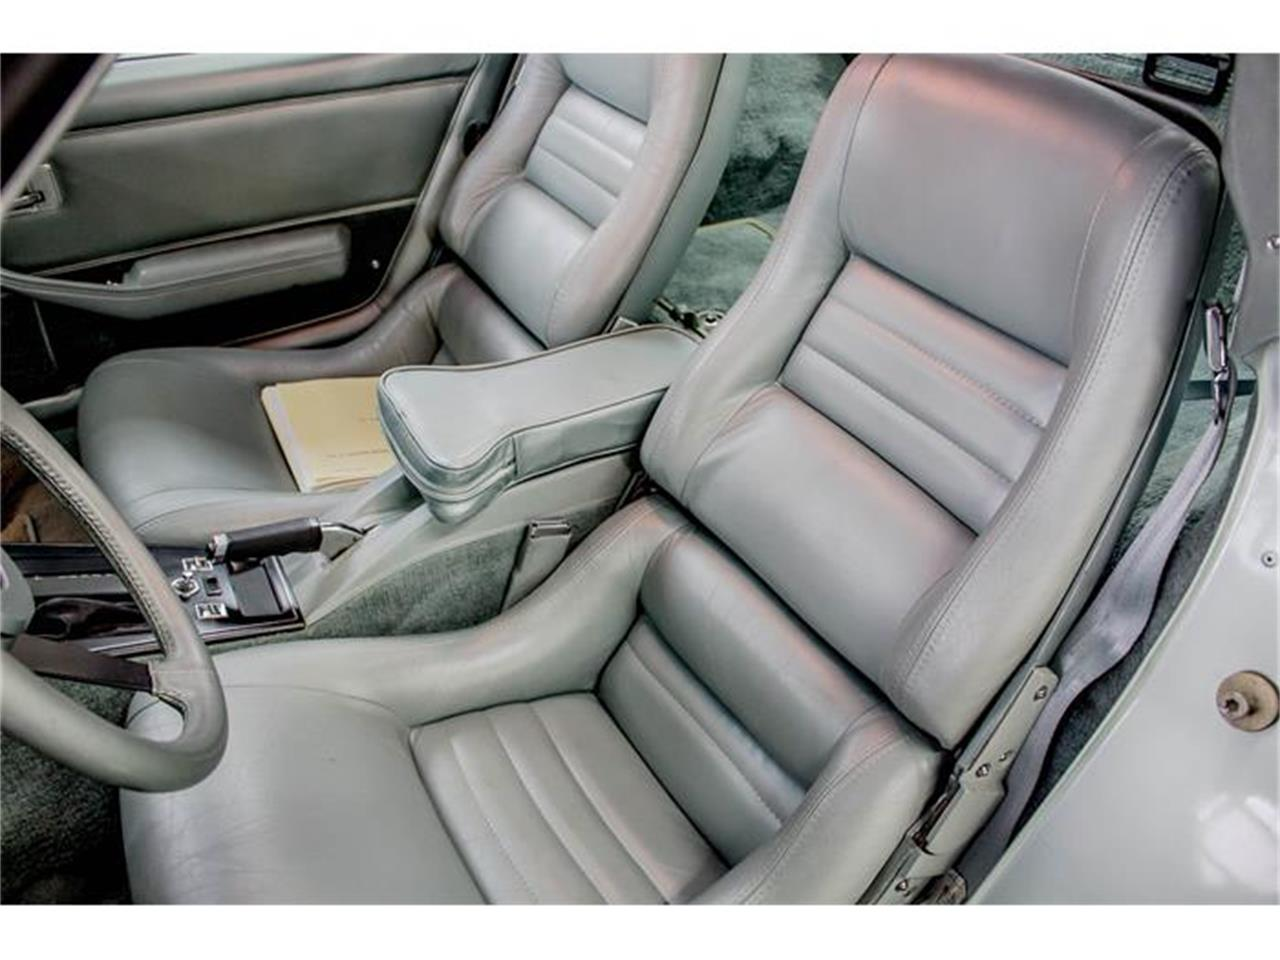 Large Picture of '82 Chevrolet Corvette located in Quebec - $24,900.00 - GE2L